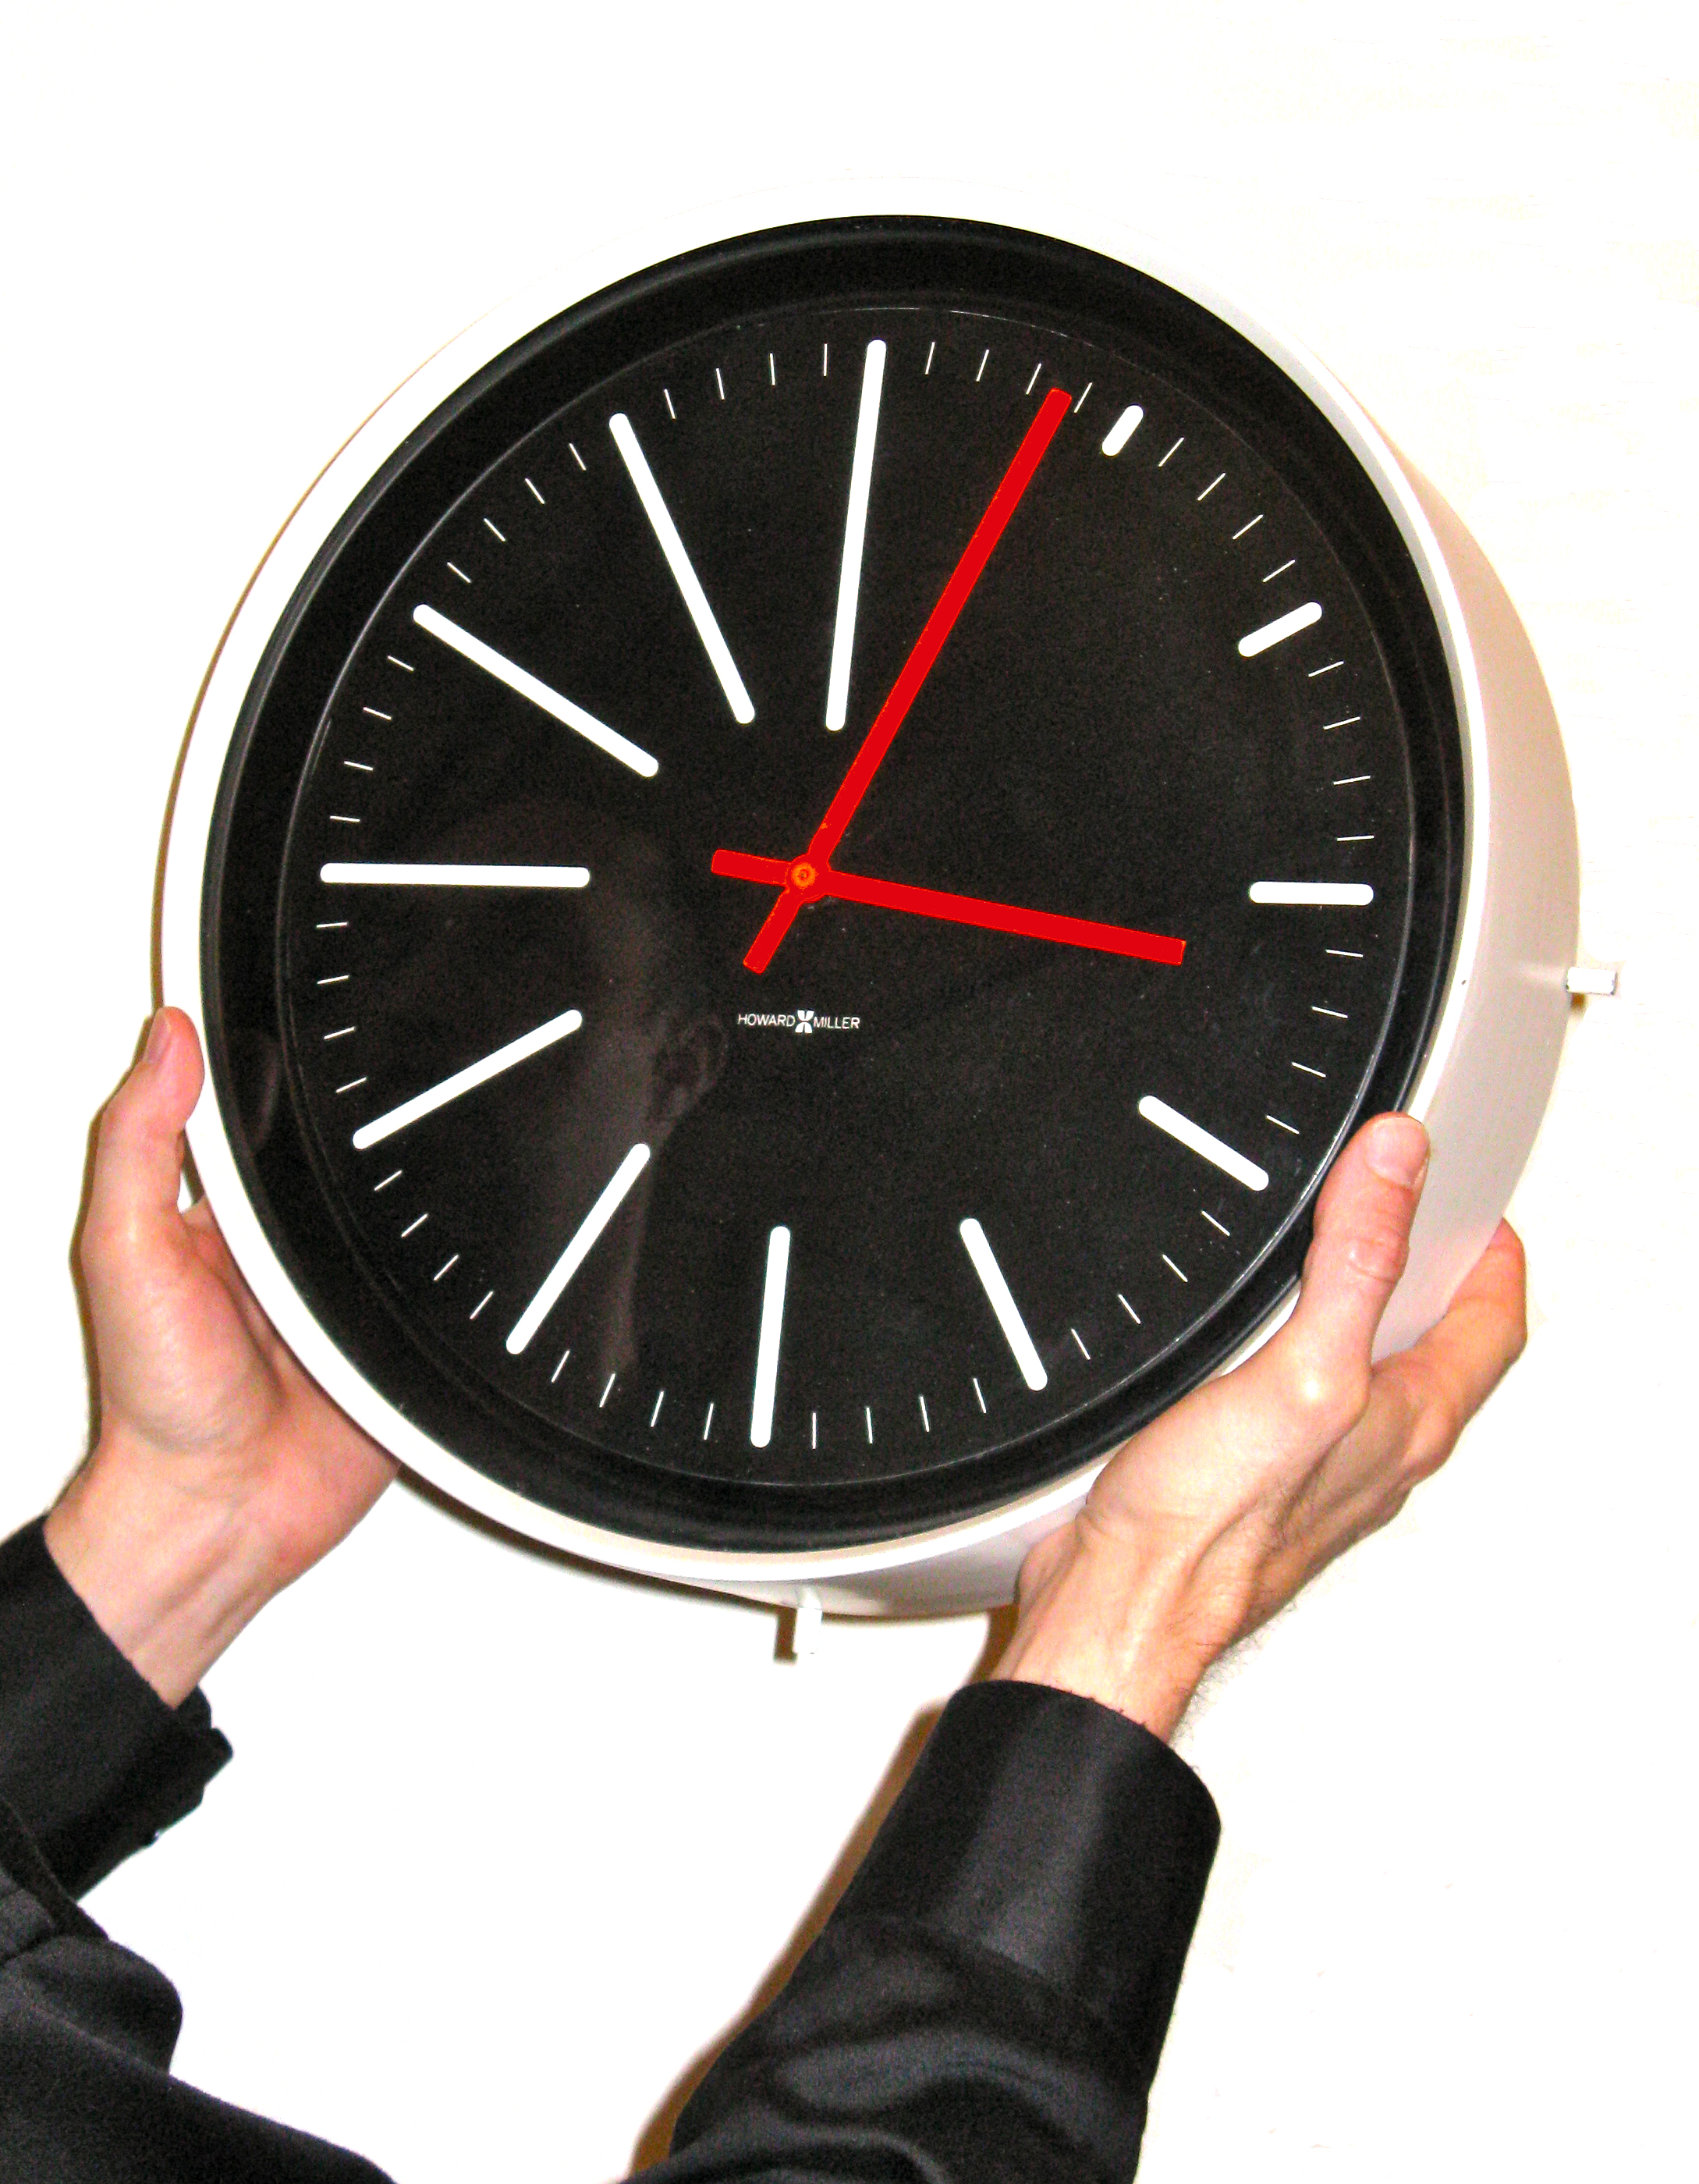 Picture showing a man holding a clock to show scale